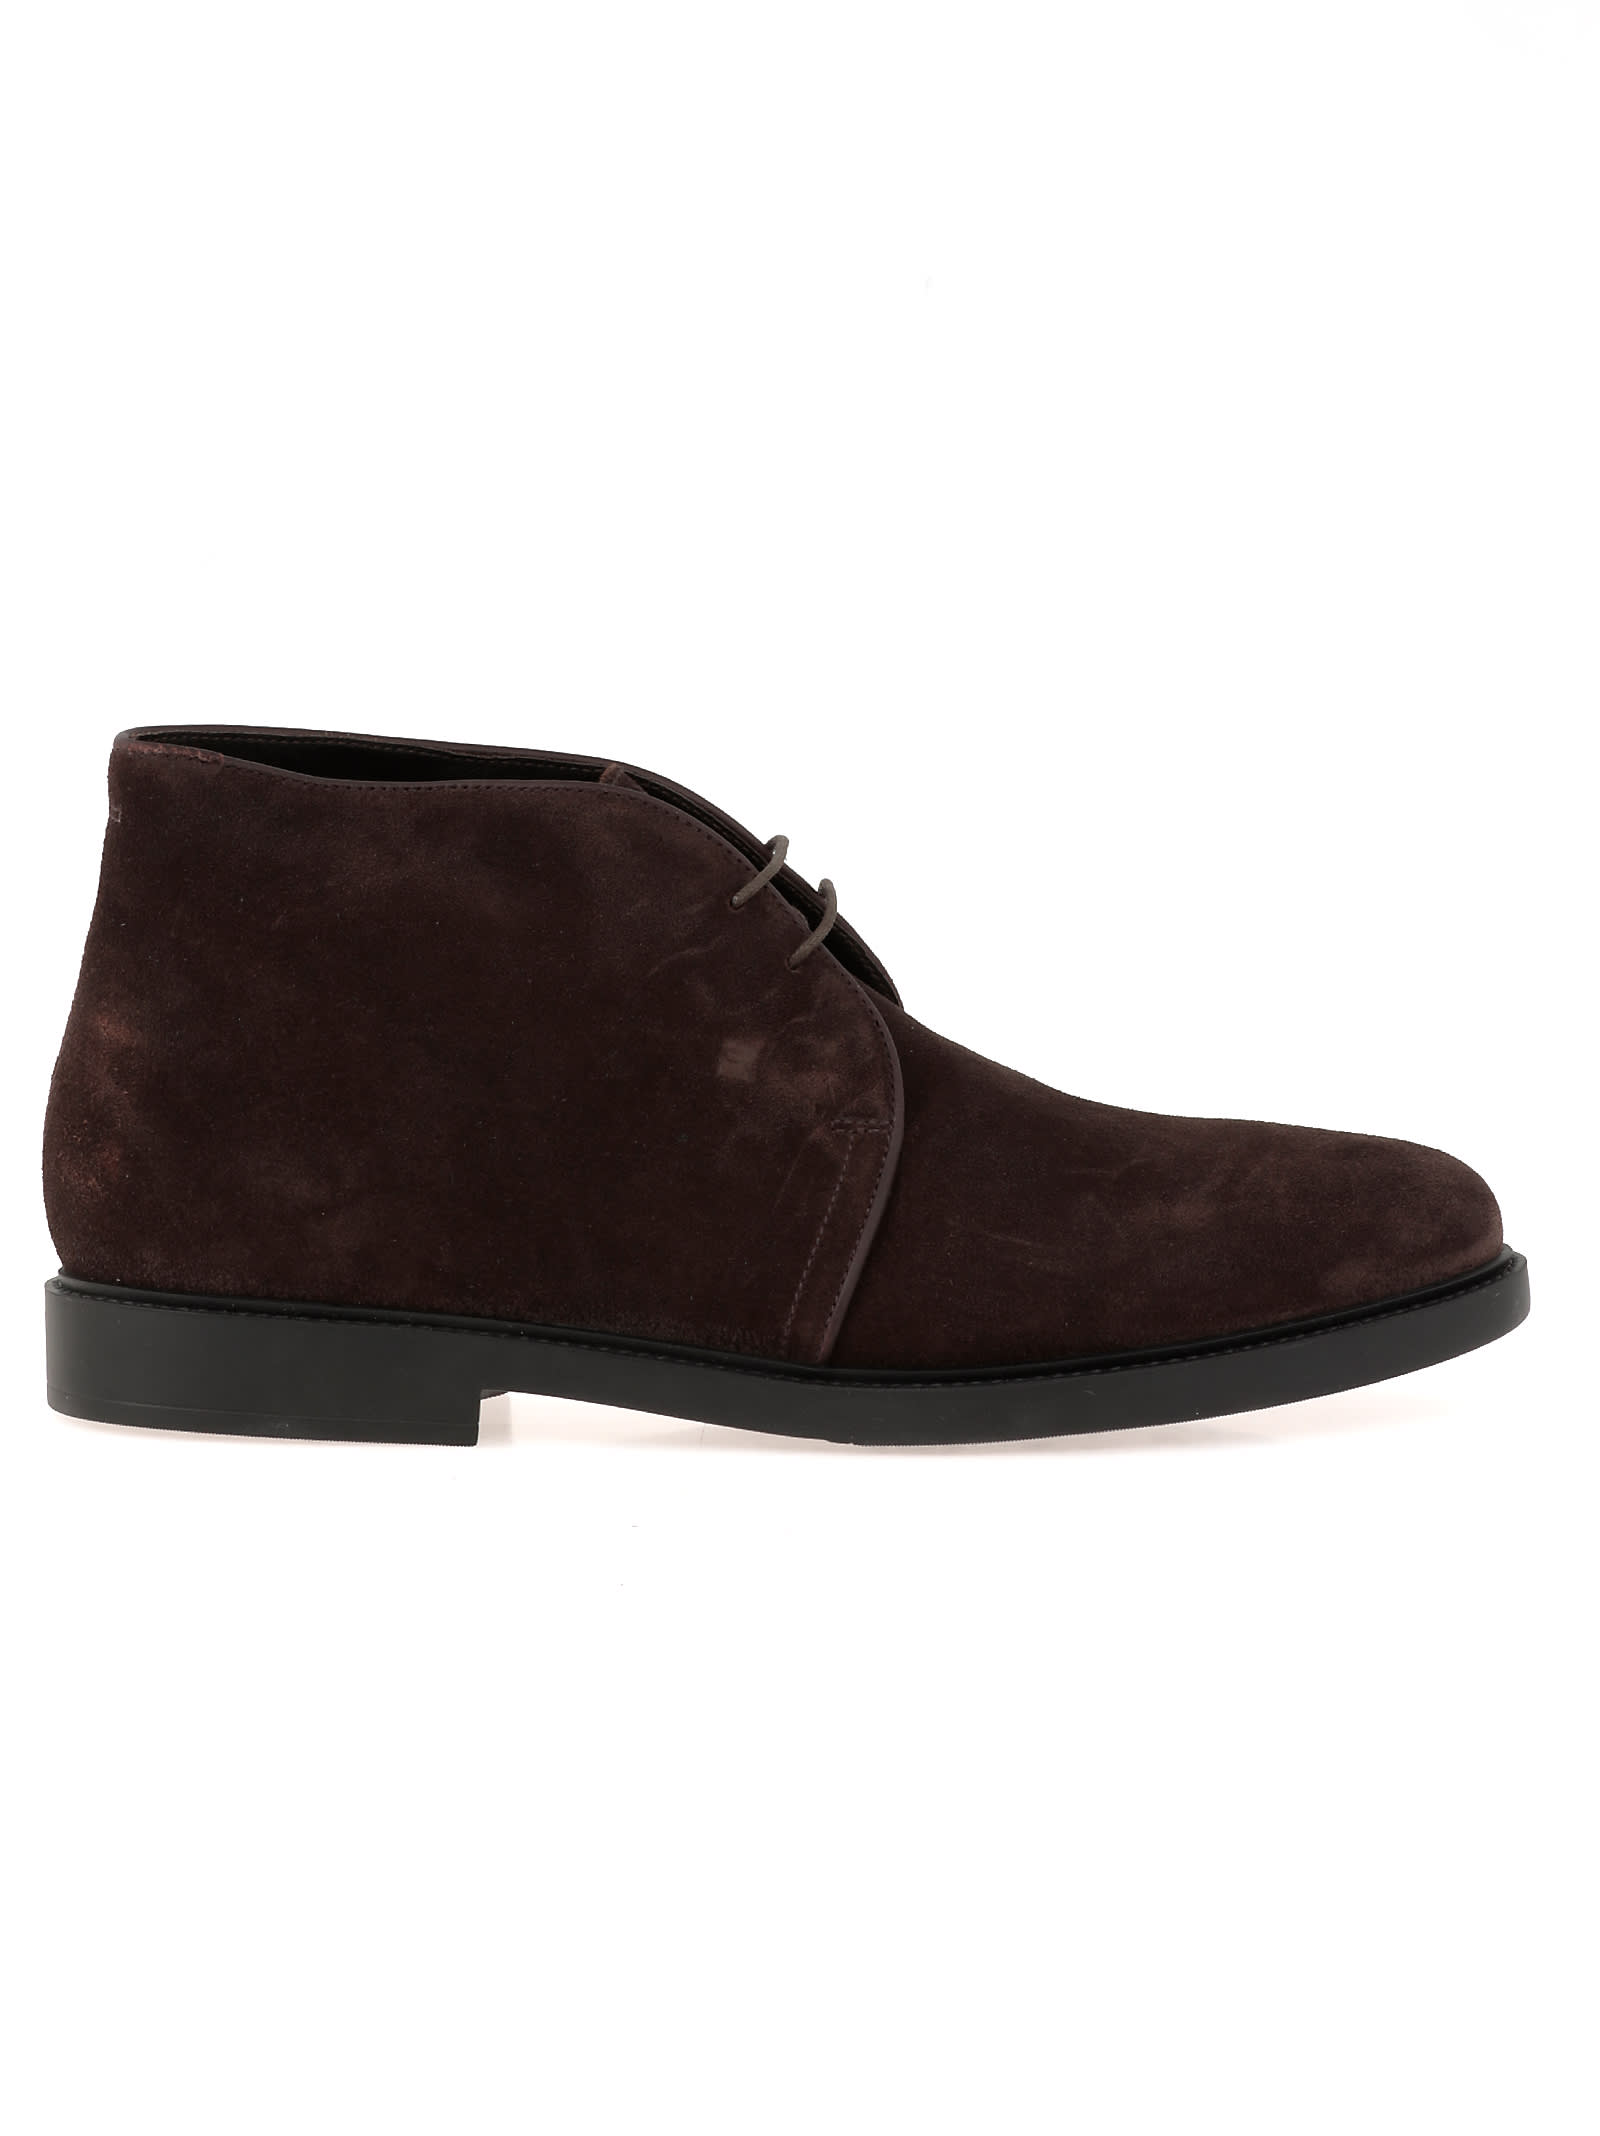 Fratelli Rossetti Leather Desert Boot